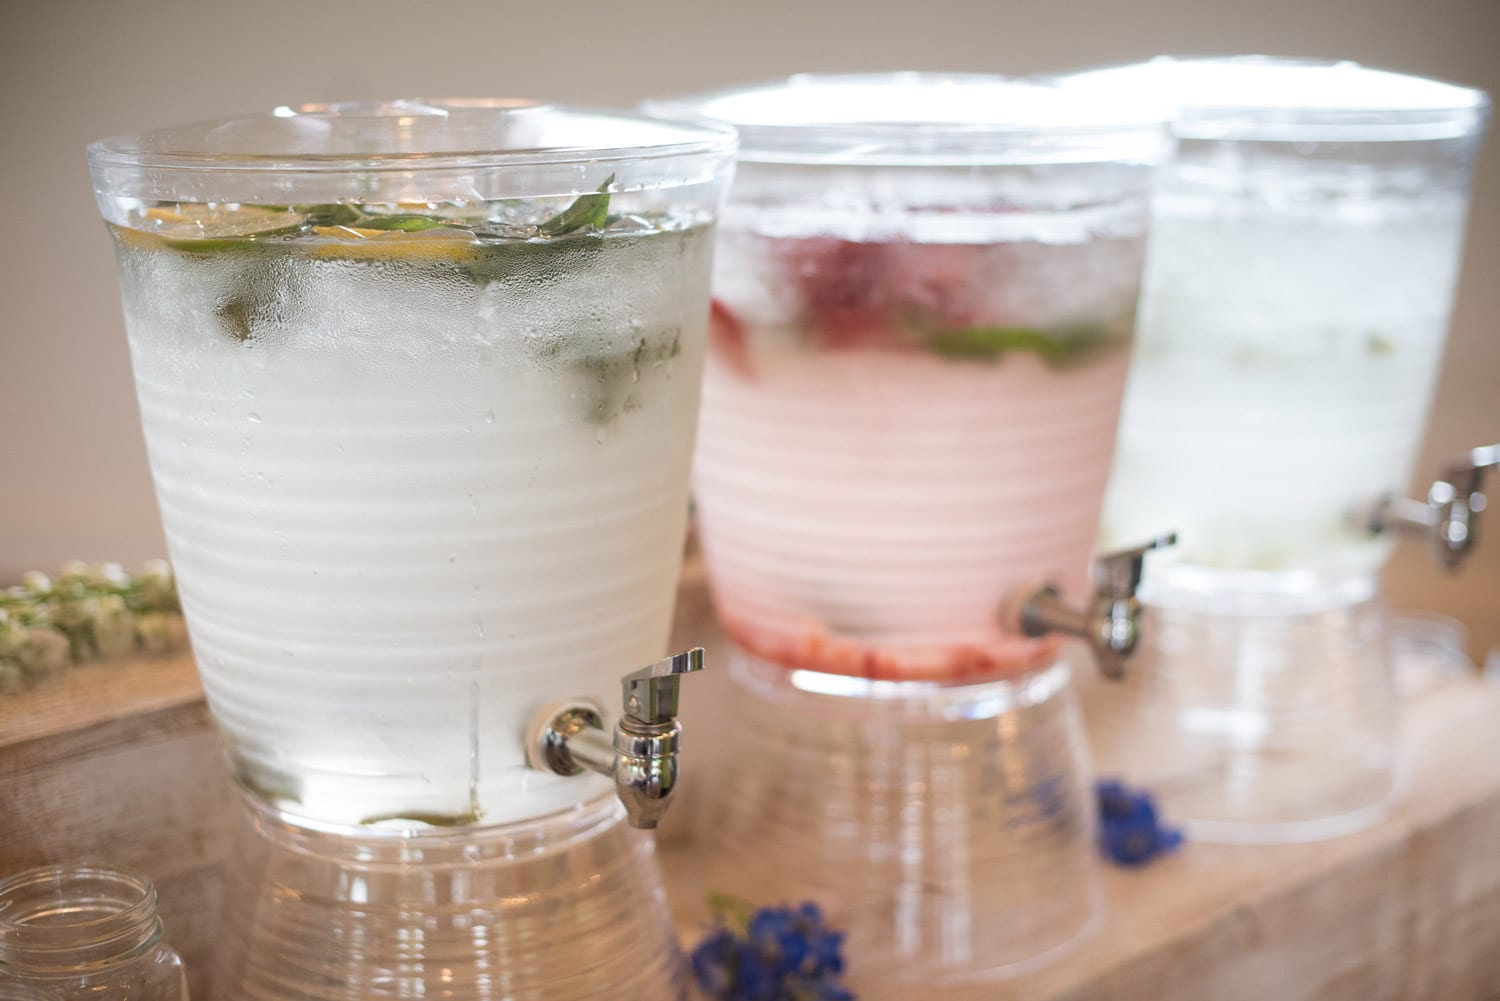 Three water jugs with tap